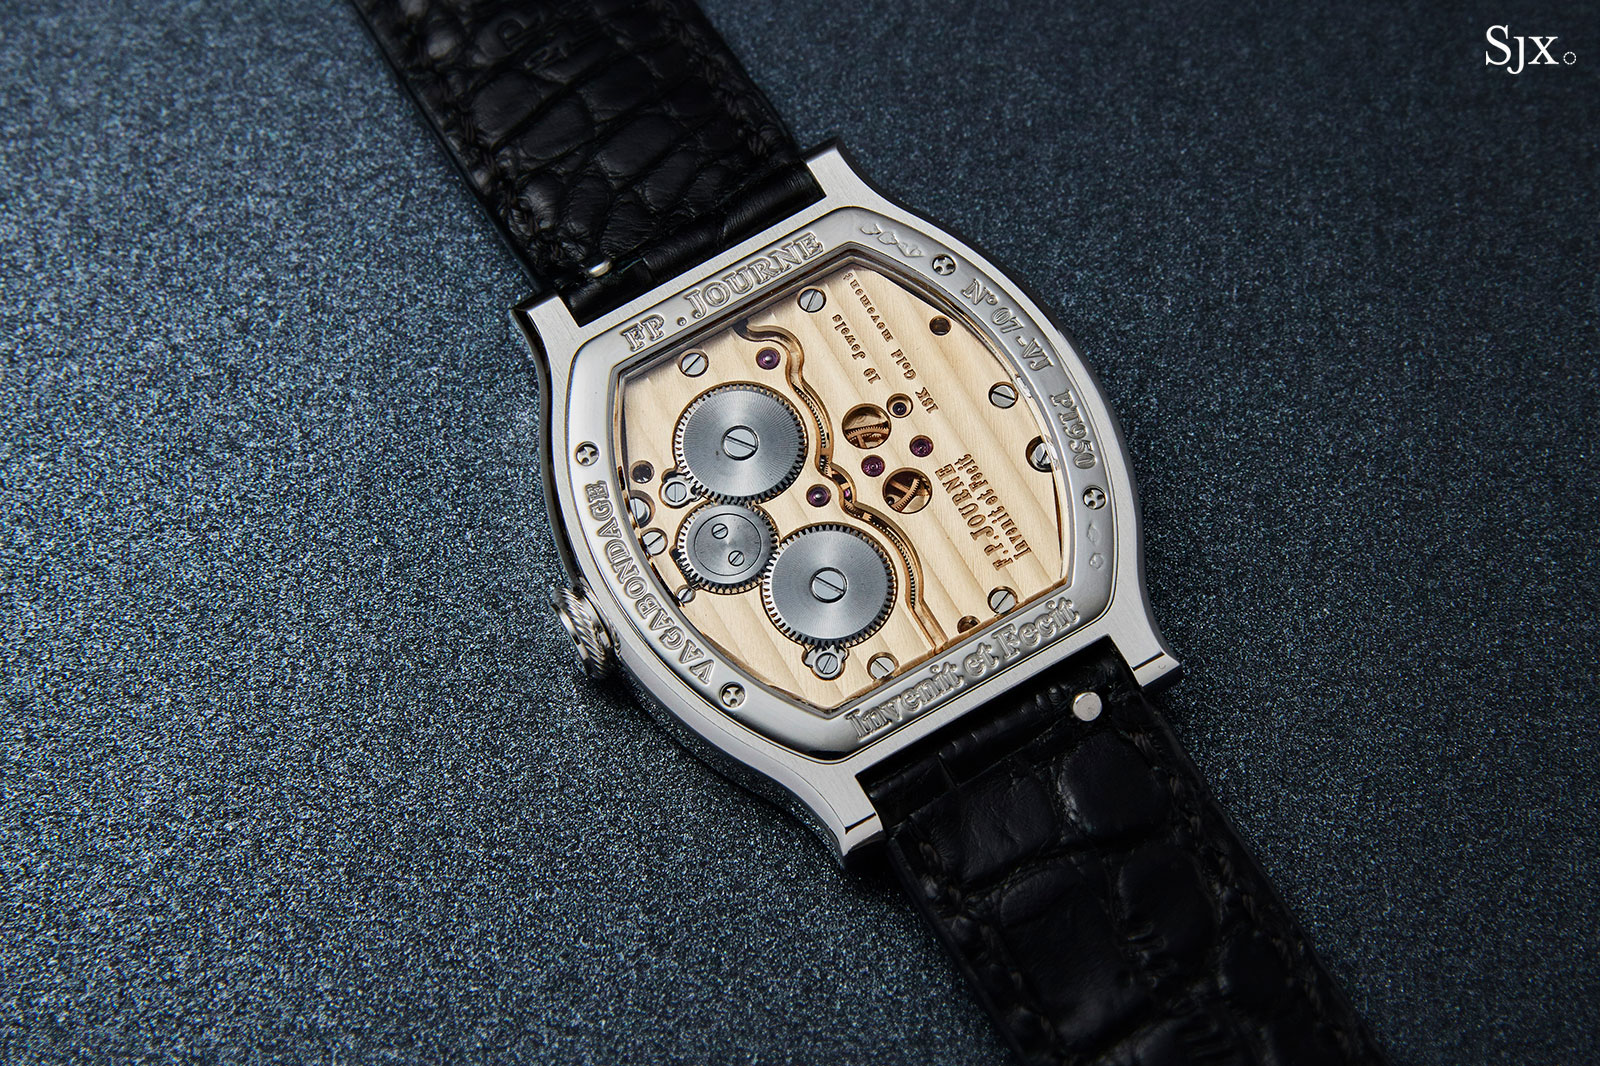 FP Journe Vagabondage I diamonds 2